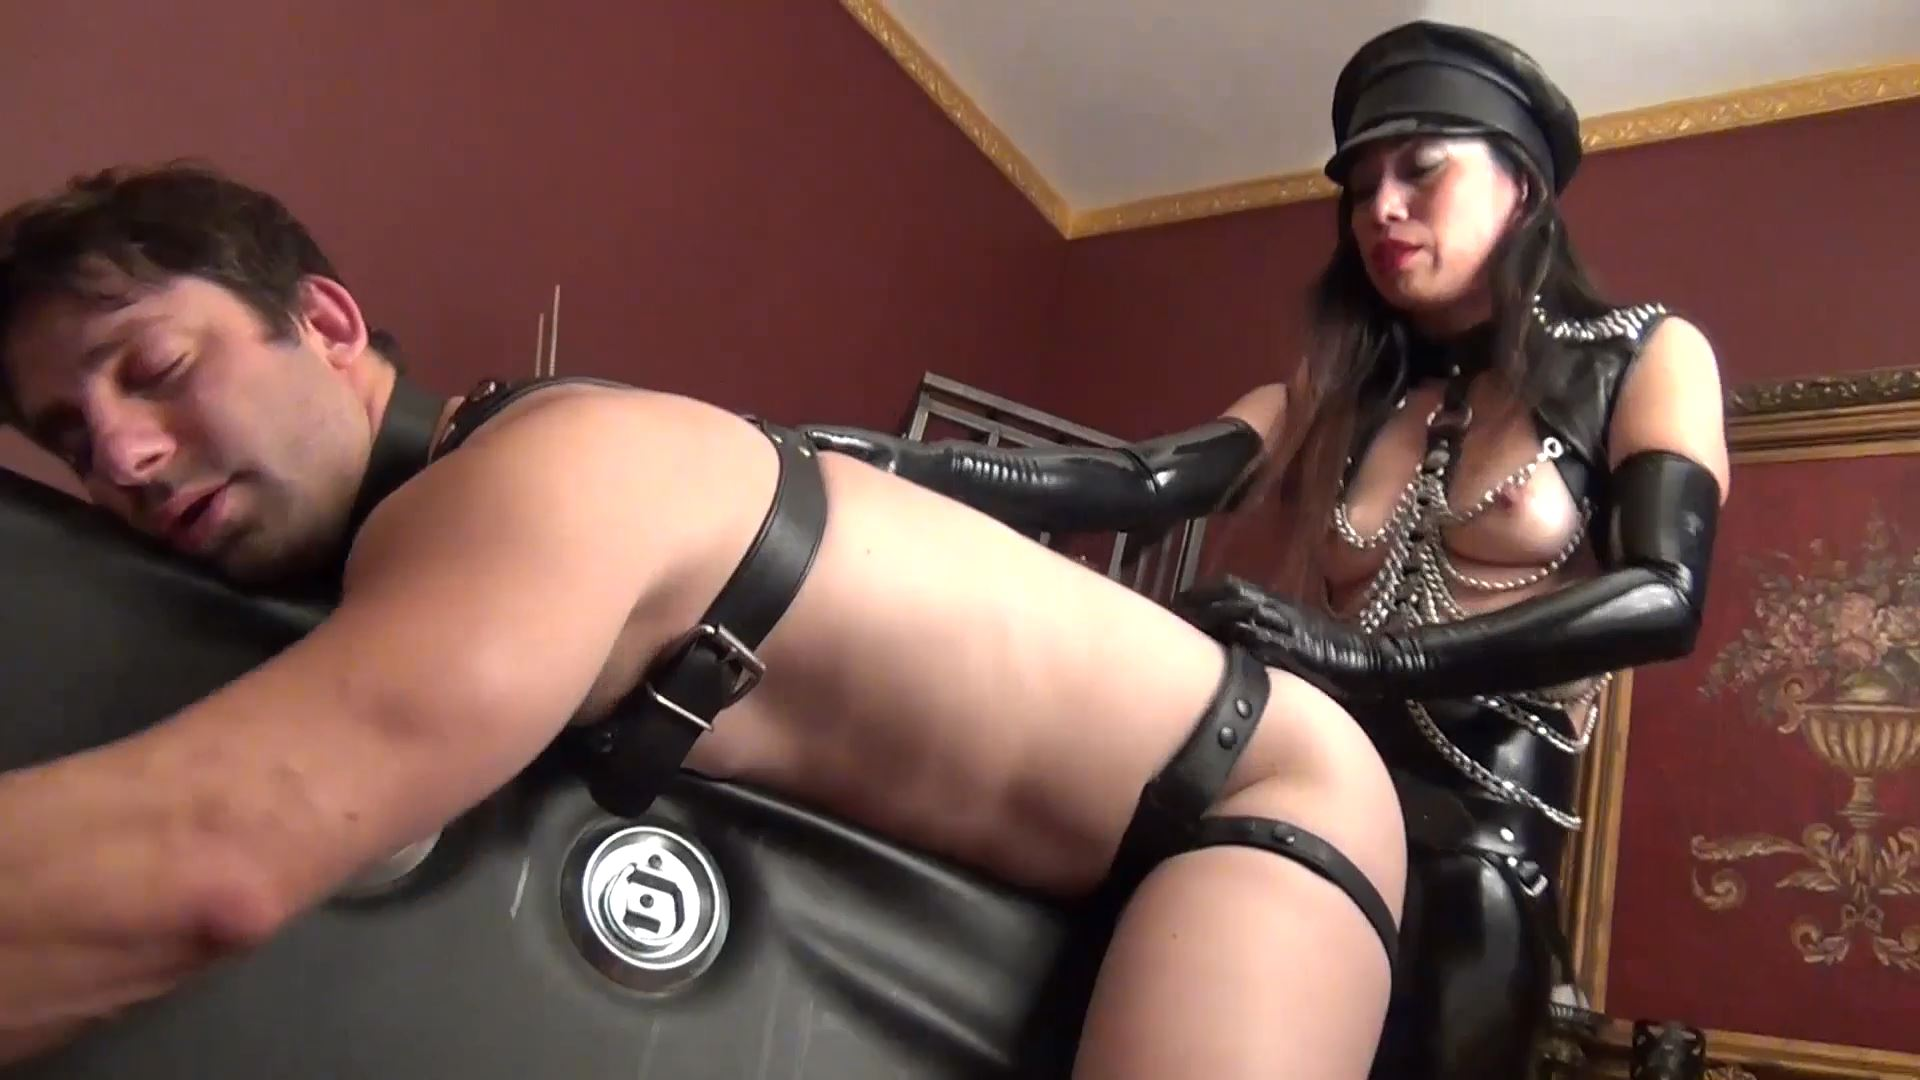 Goddess Pepper In Scene: BE THANKFUL FOR THIS COCK! - ASIAN CRUELTY - FULL HD/1080p/MP4